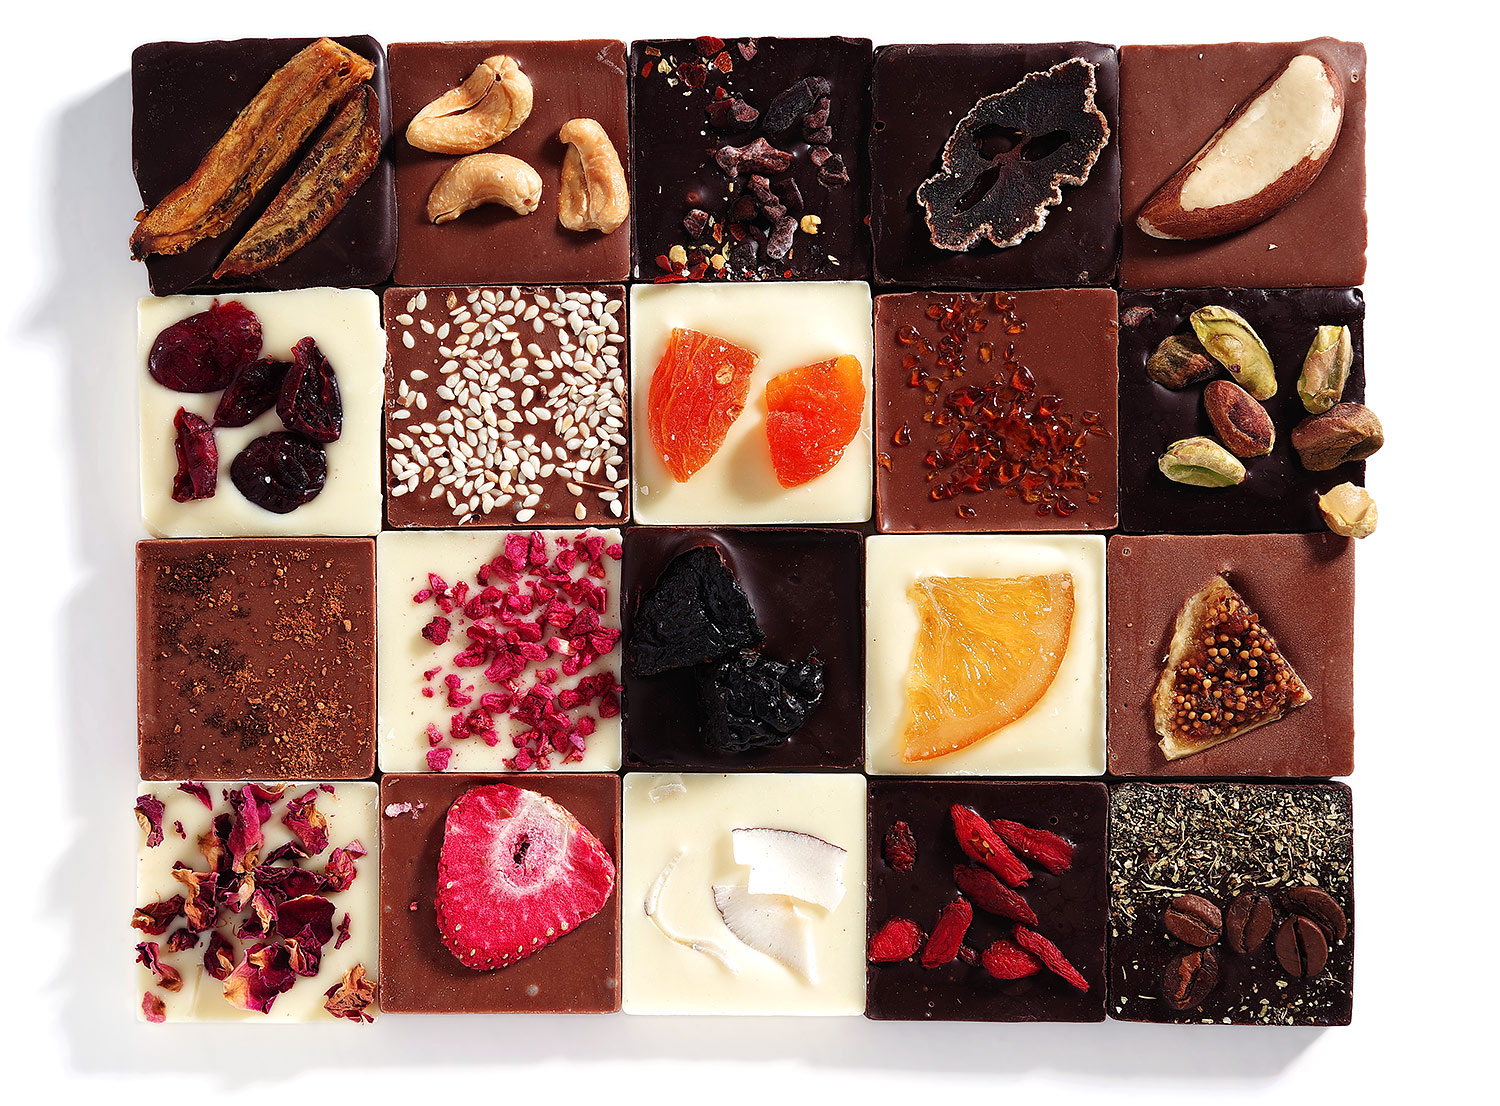 20 flavors of chocolate for 2020. Exclusive chocolate, special recipe. Unique flavors of chocolate. Chocolate gift Altbank.